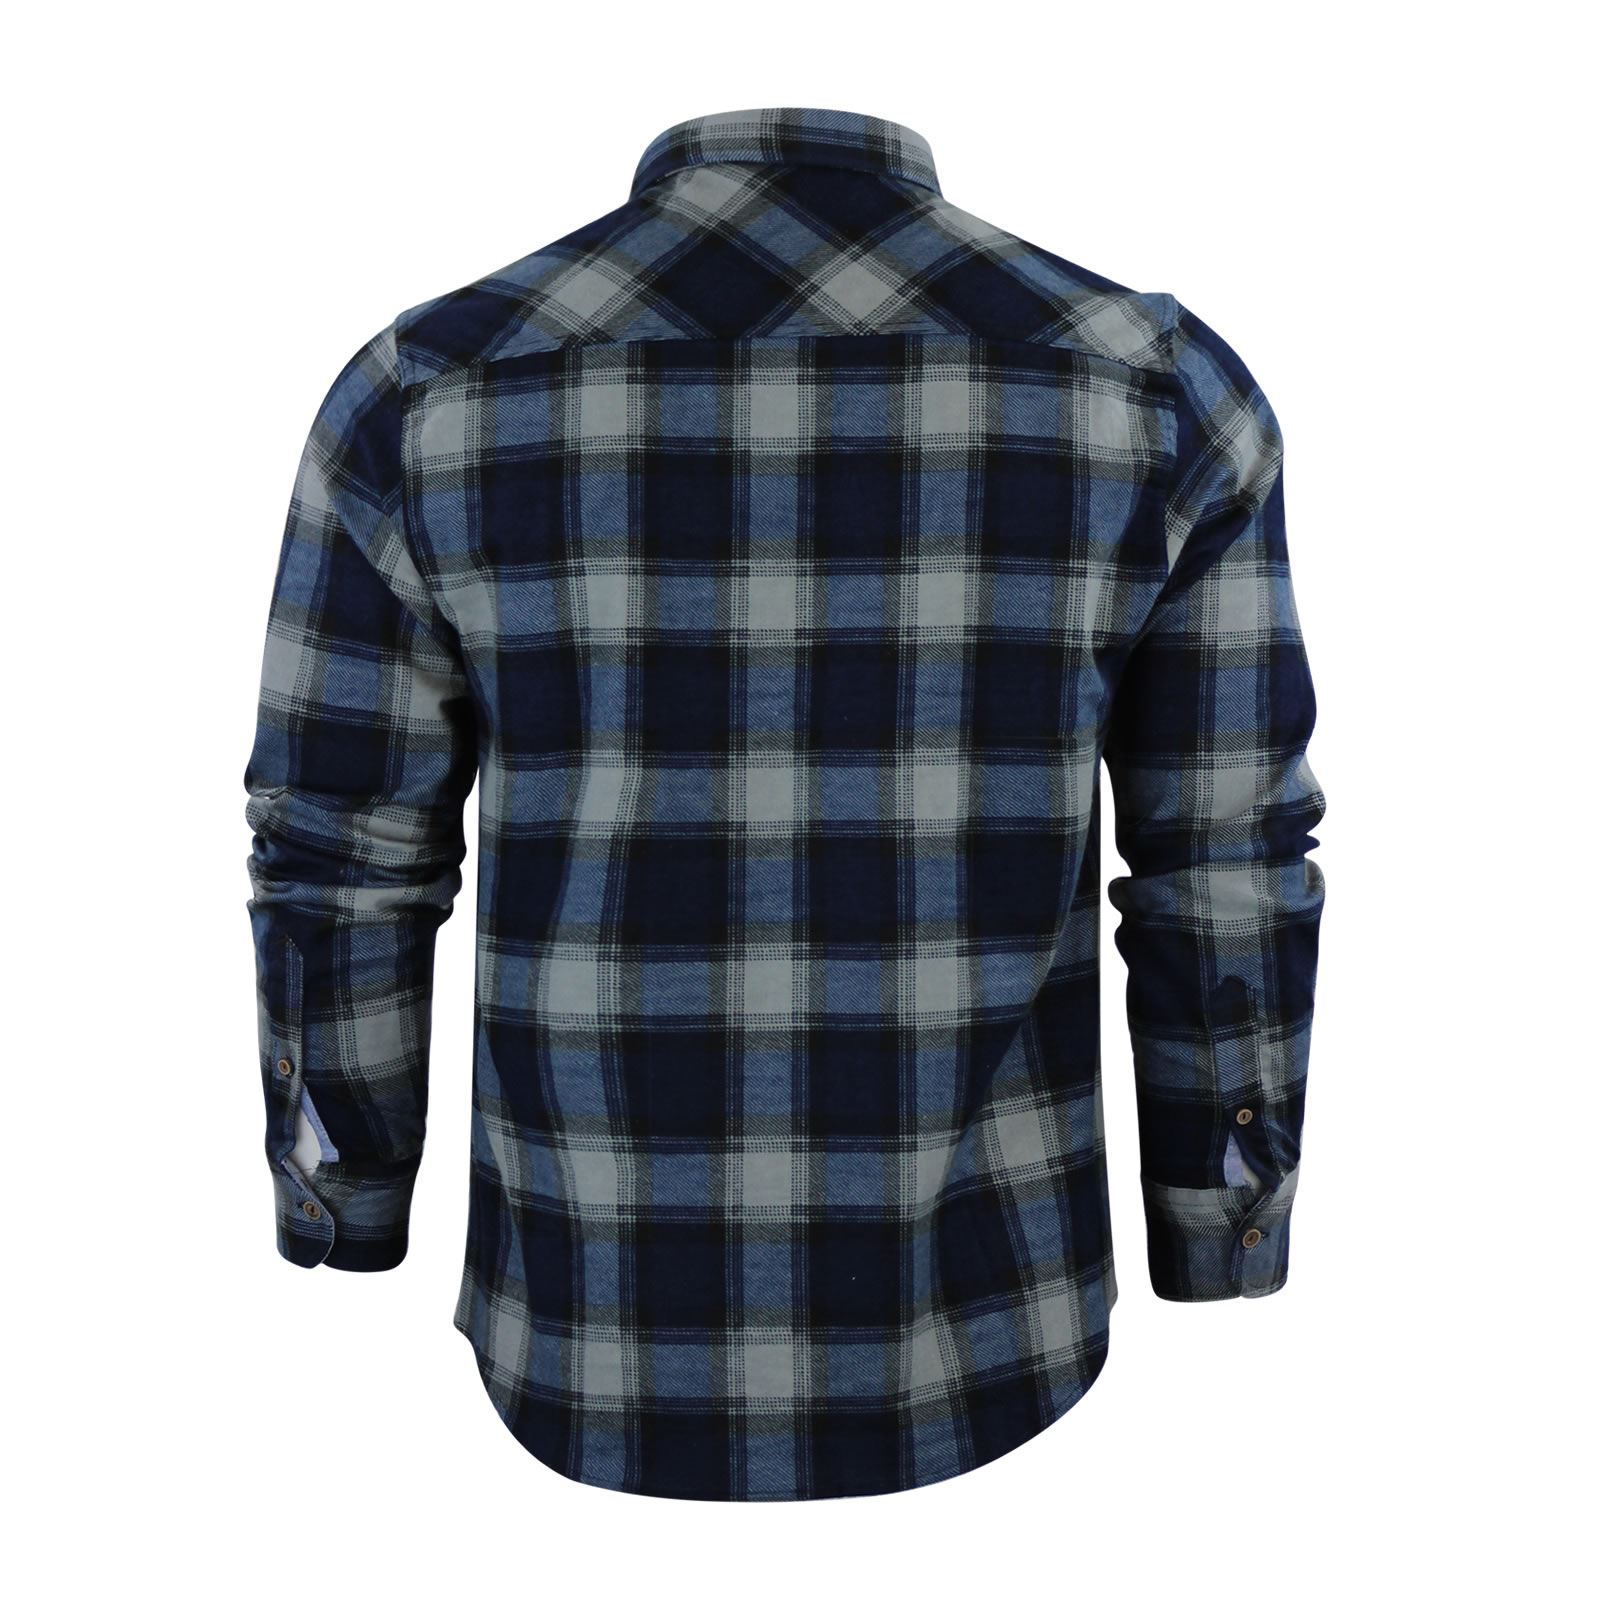 Mens-Check-Shirt-Brave-Soul-Flannel-Brushed-Cotton-Long-Sleeve-Casual-Top thumbnail 39